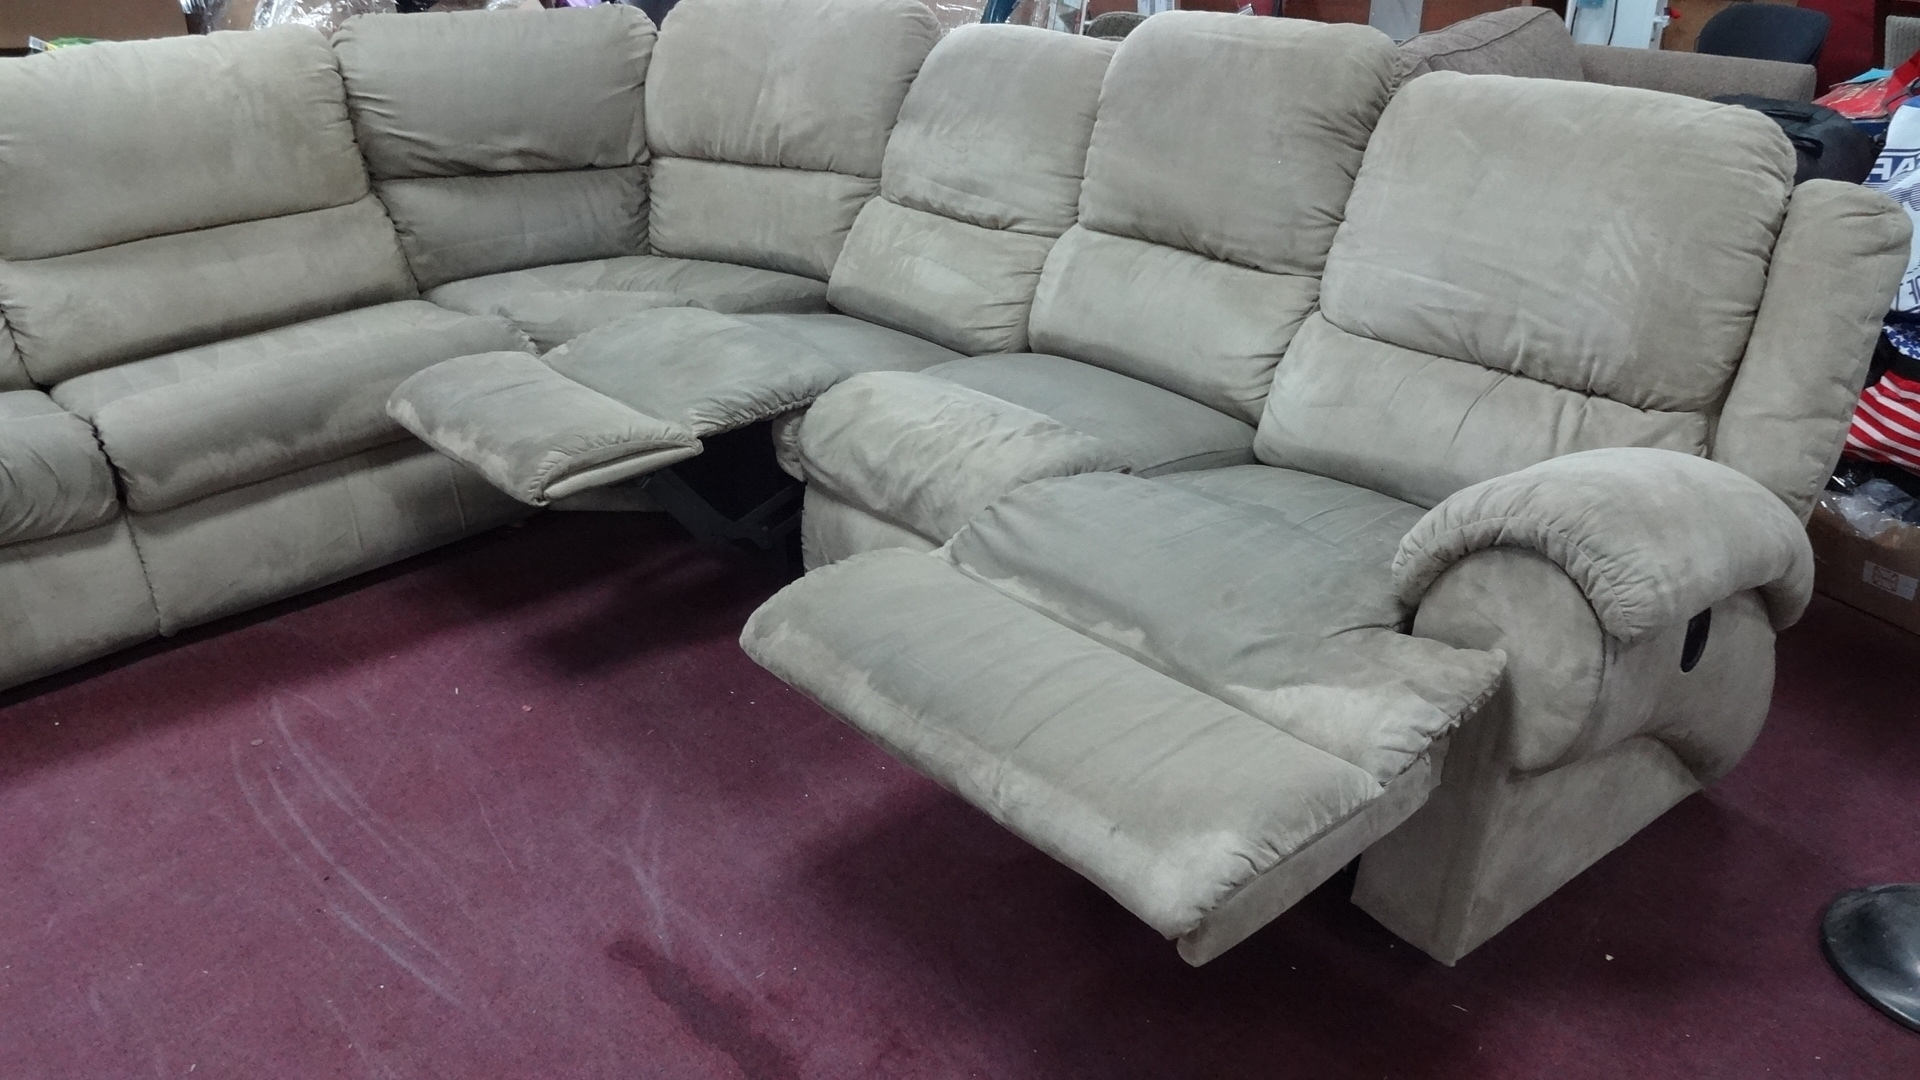 La Z Boy Sectional Sofa Bed • Sofa Bed With Current La Z Boy Sectional Sofas (View 7 of 15)